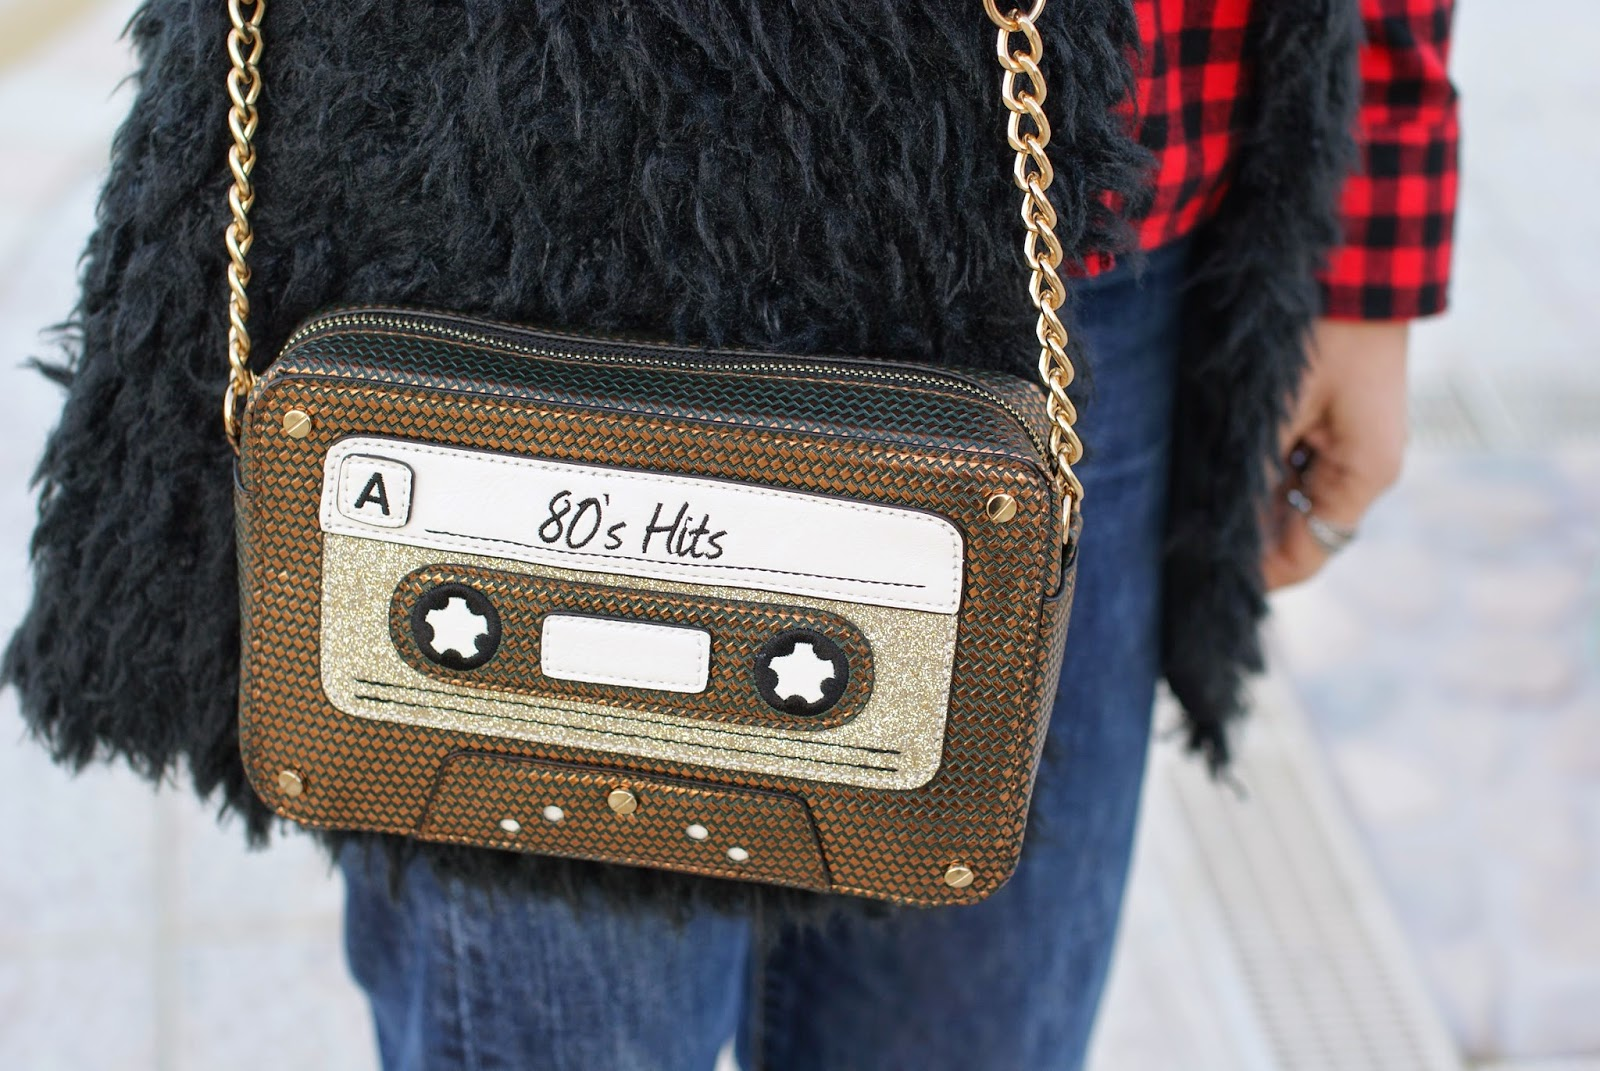 Accessorize 80s hits bag, Fashion and Cookies, fashion blogger